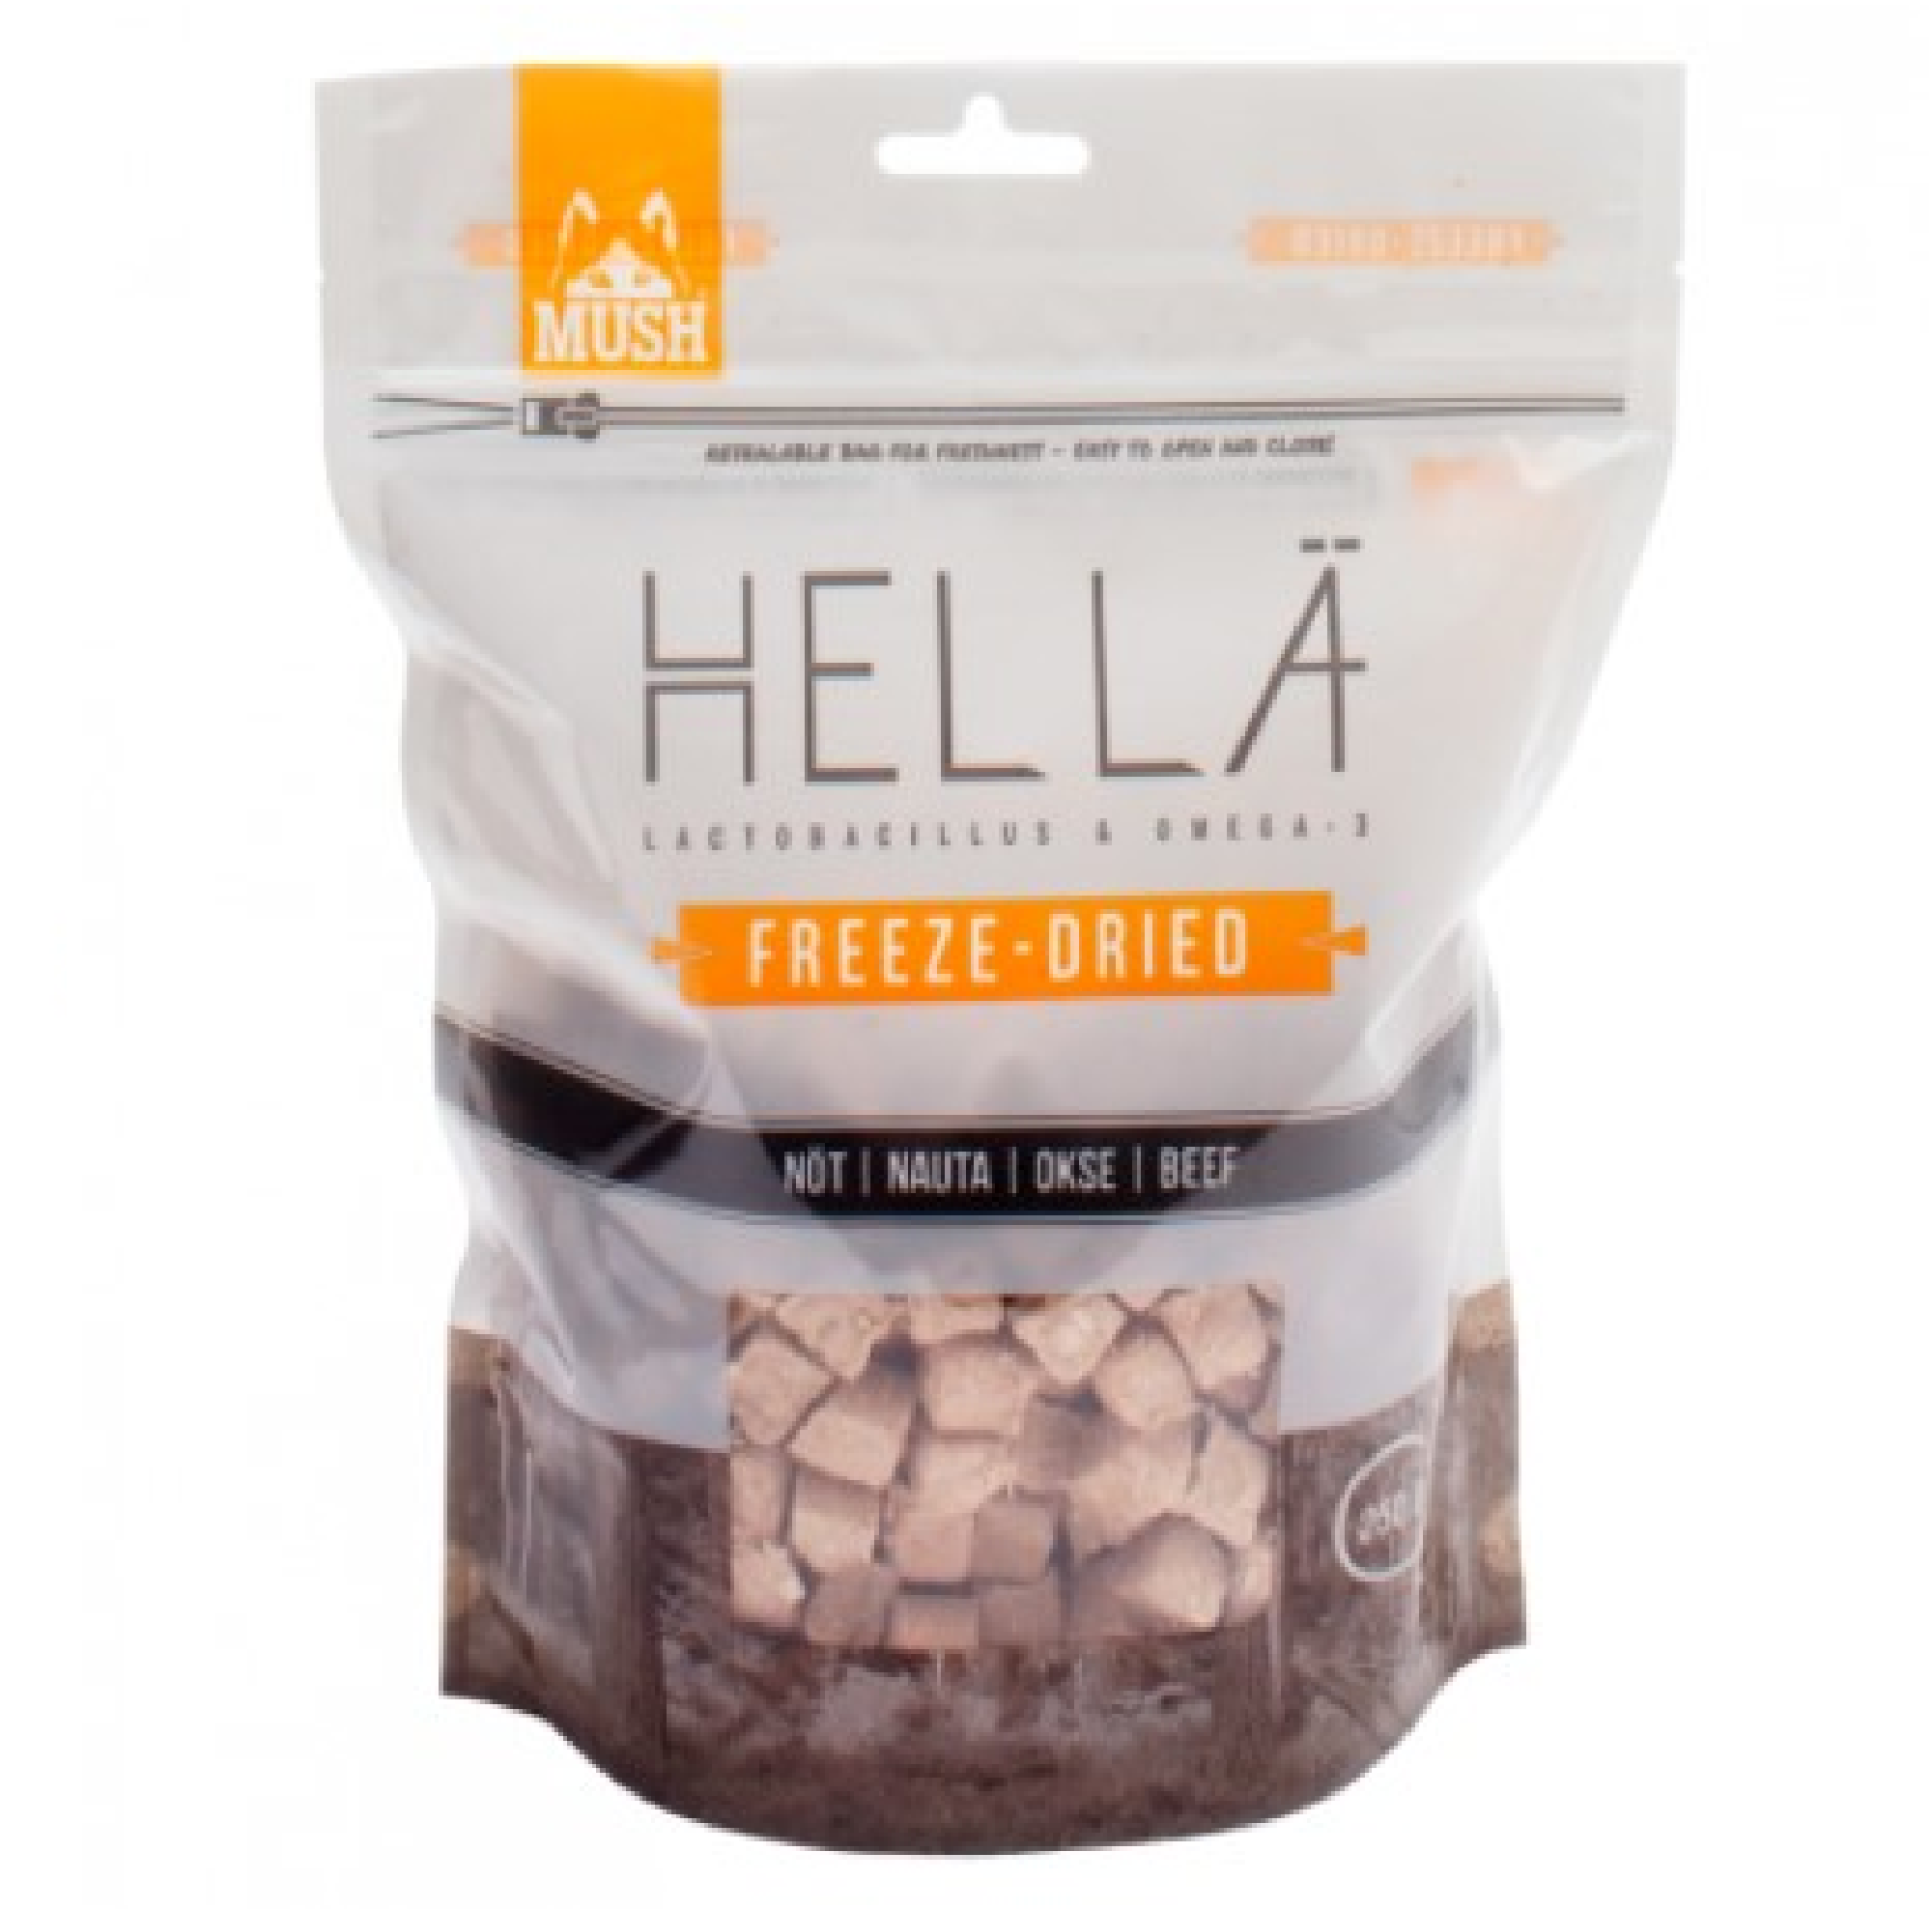 MUSH Hellä Freeze-Dried Nöt